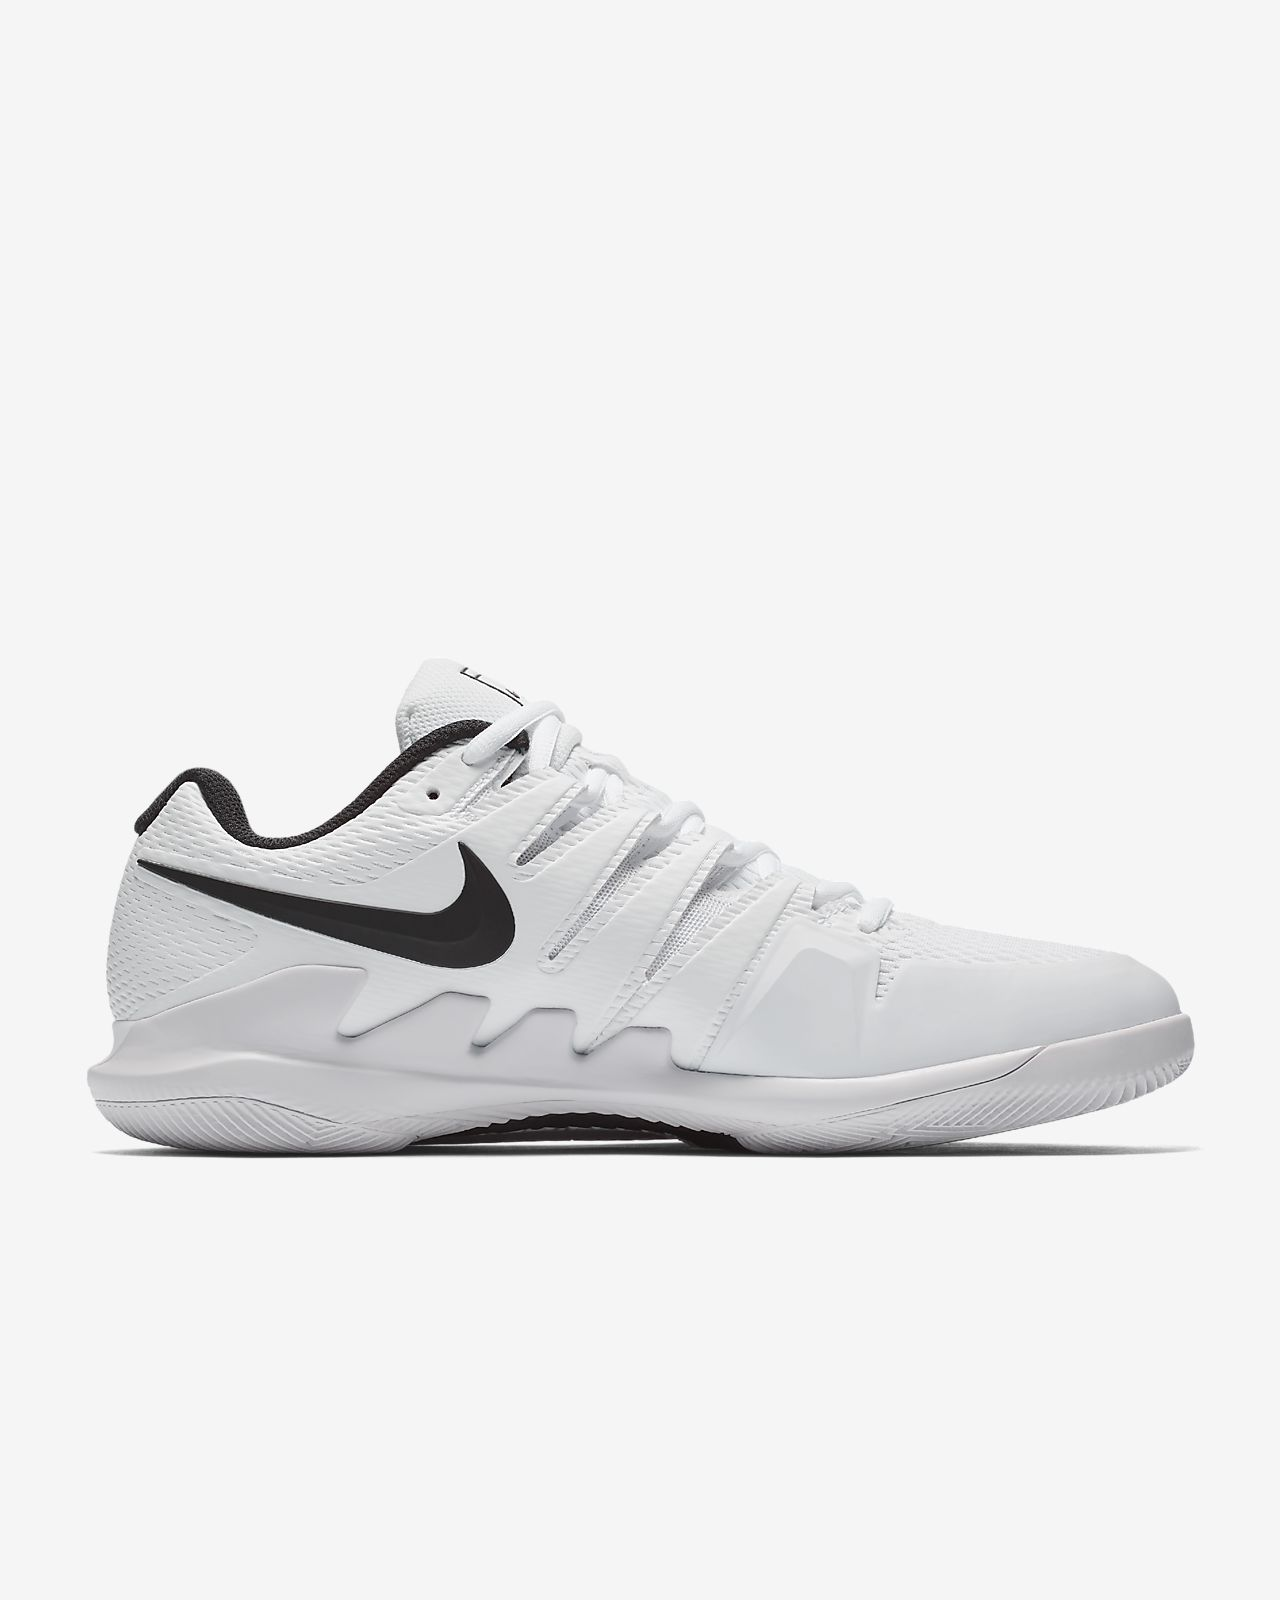 the latest 48cf6 a49c4 ... Nike Air Zoom Vapor X HC Men s Tennis Shoe